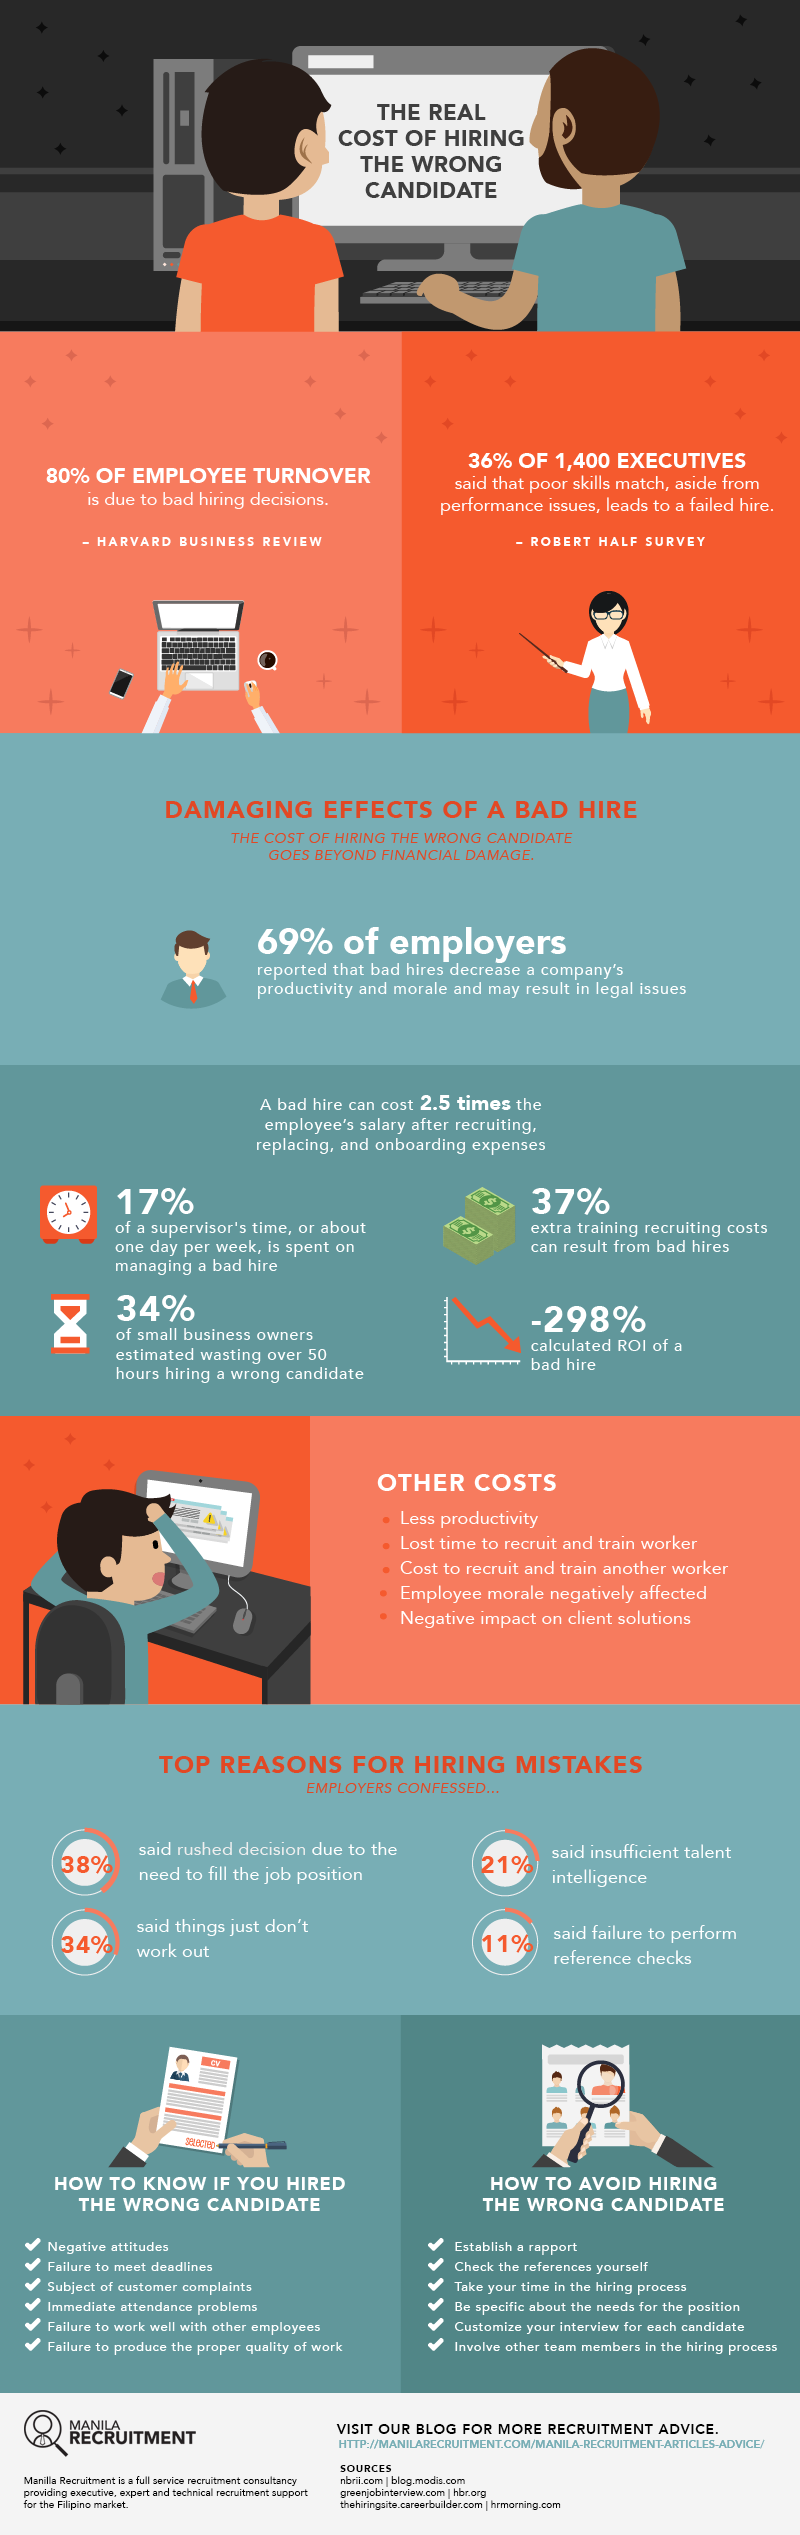 the real cost of hiring the wrong candidate-infographic